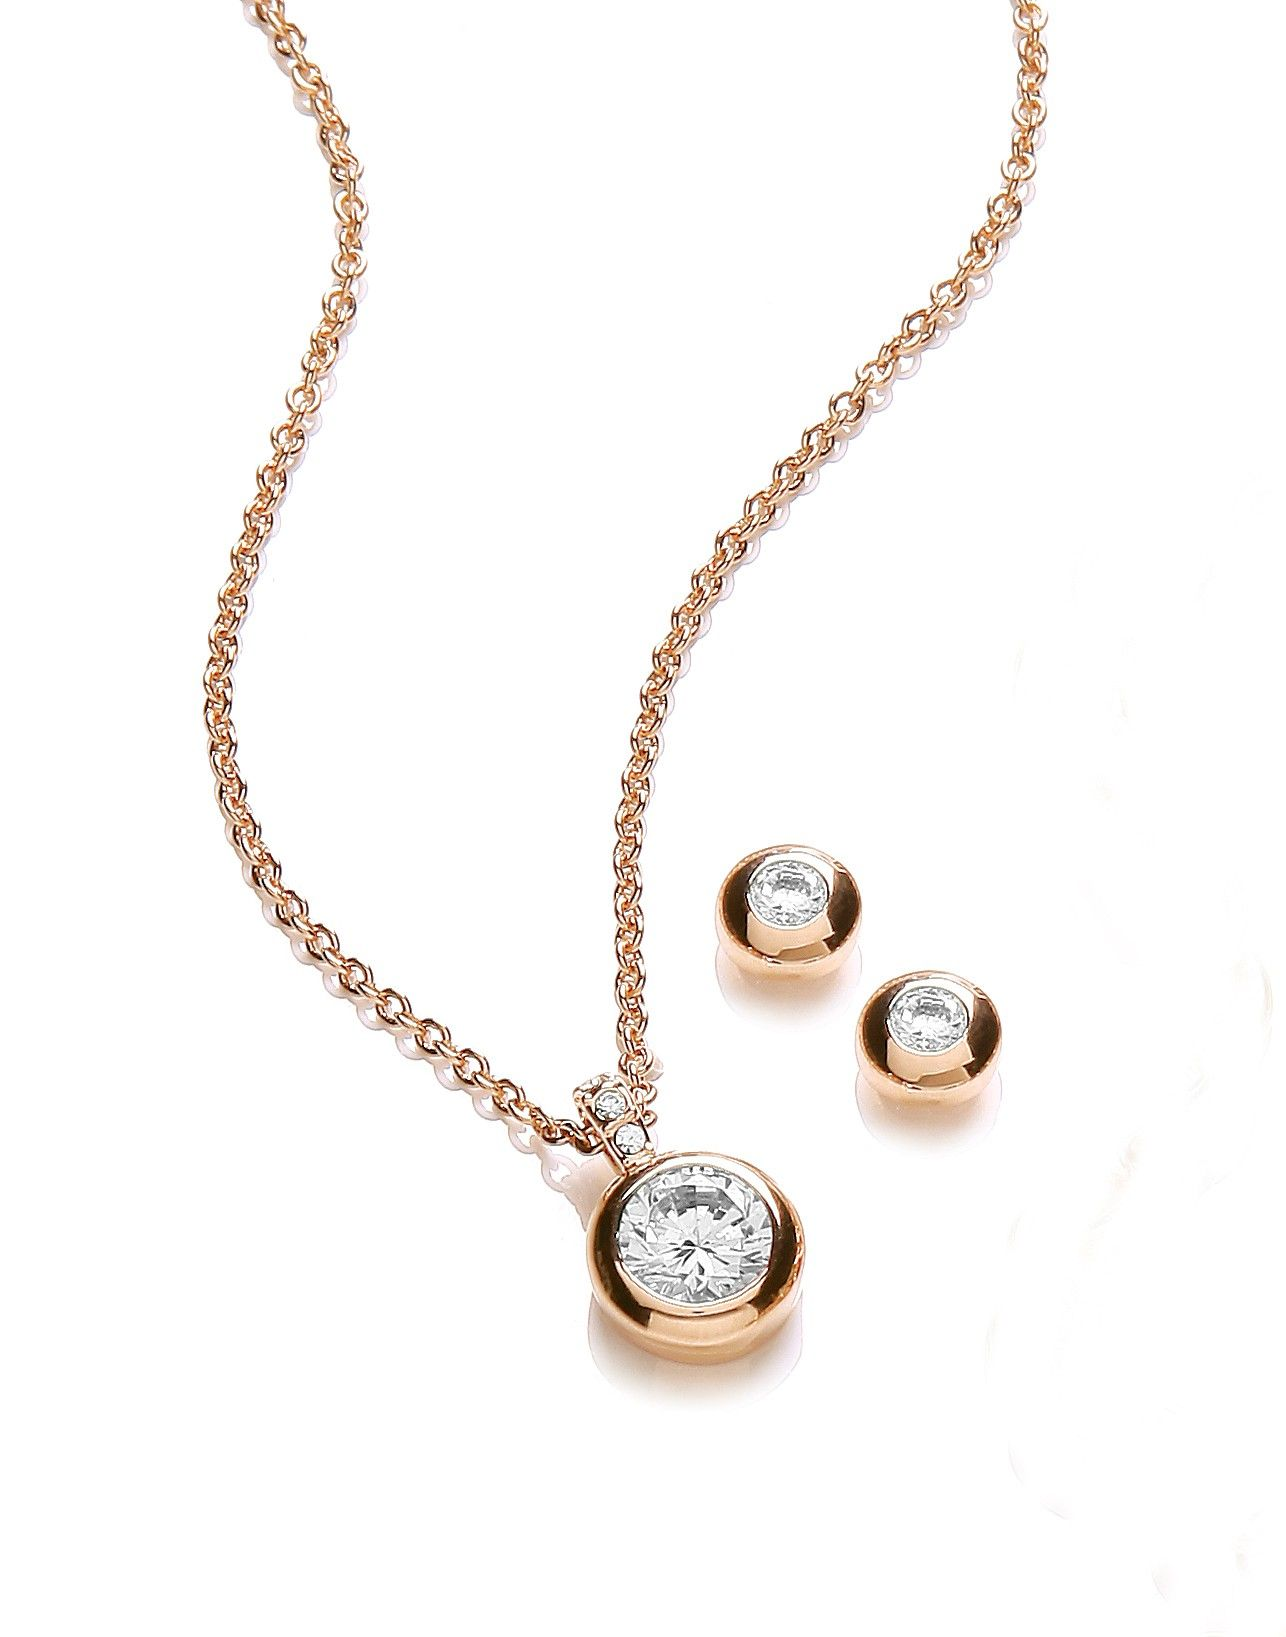 Gold plated earring and pendant bezel set buckley london ss